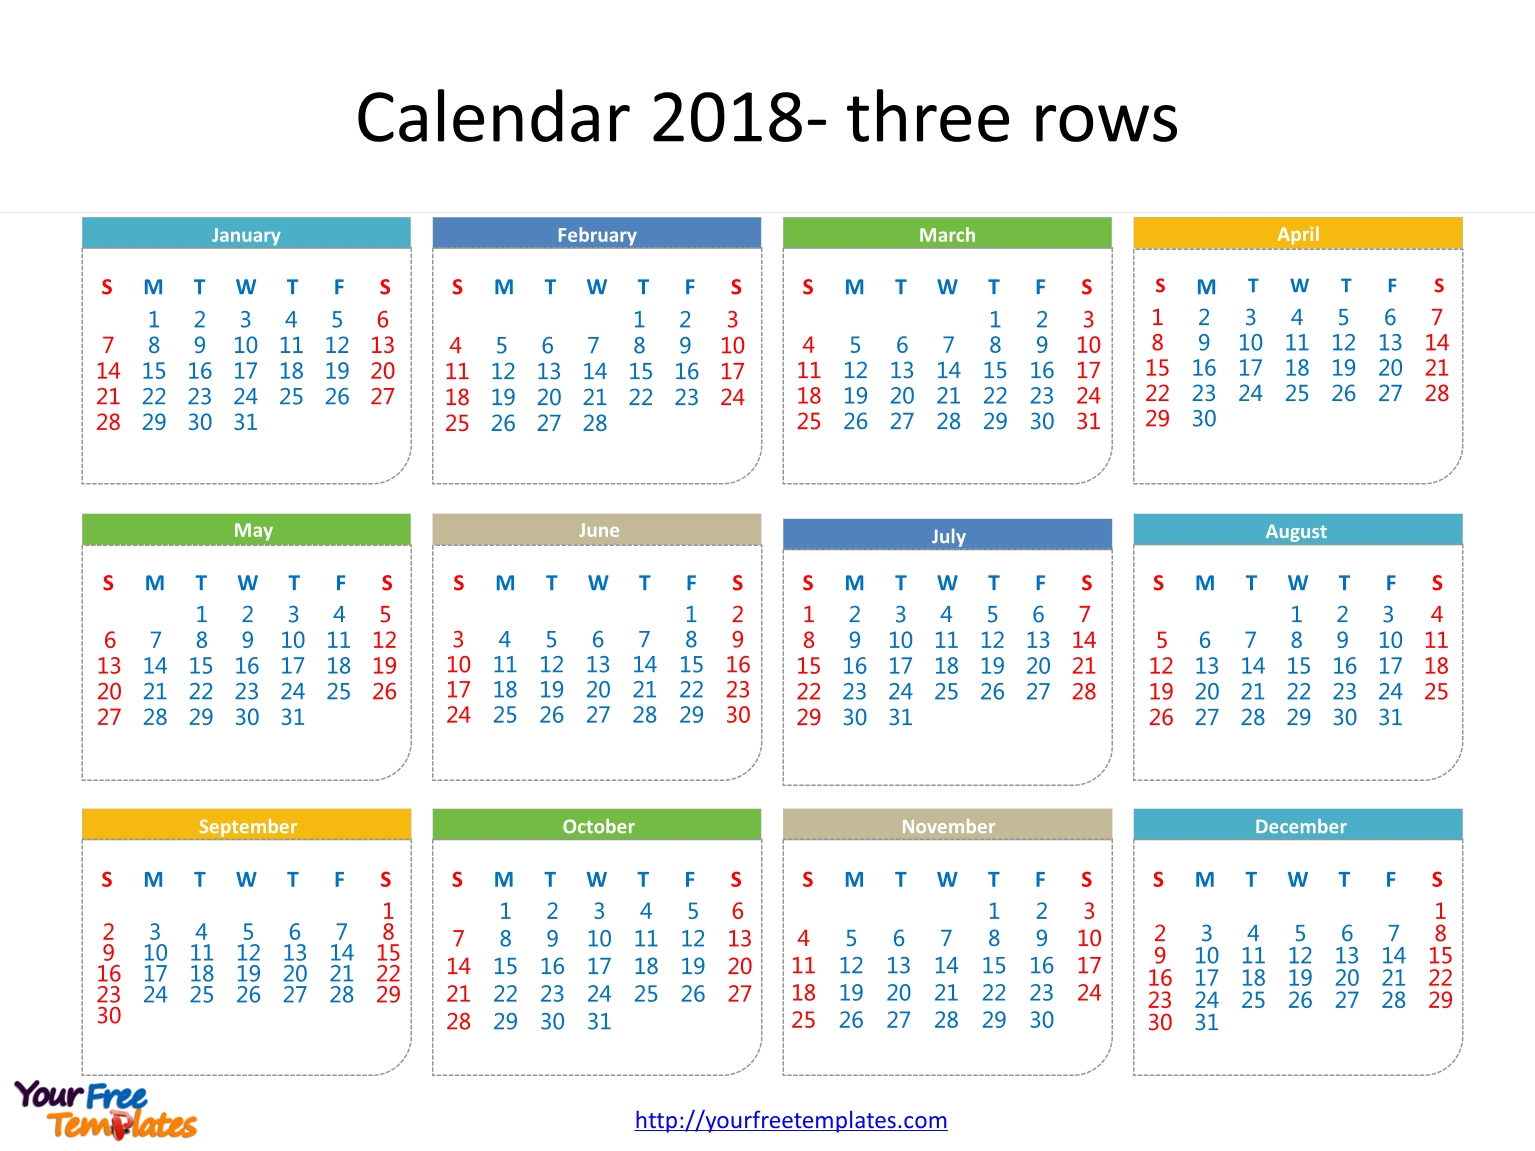 Printable Calendar 2018 - Free Powerpoint Templates pertaining to Printable Date To Date Calendar